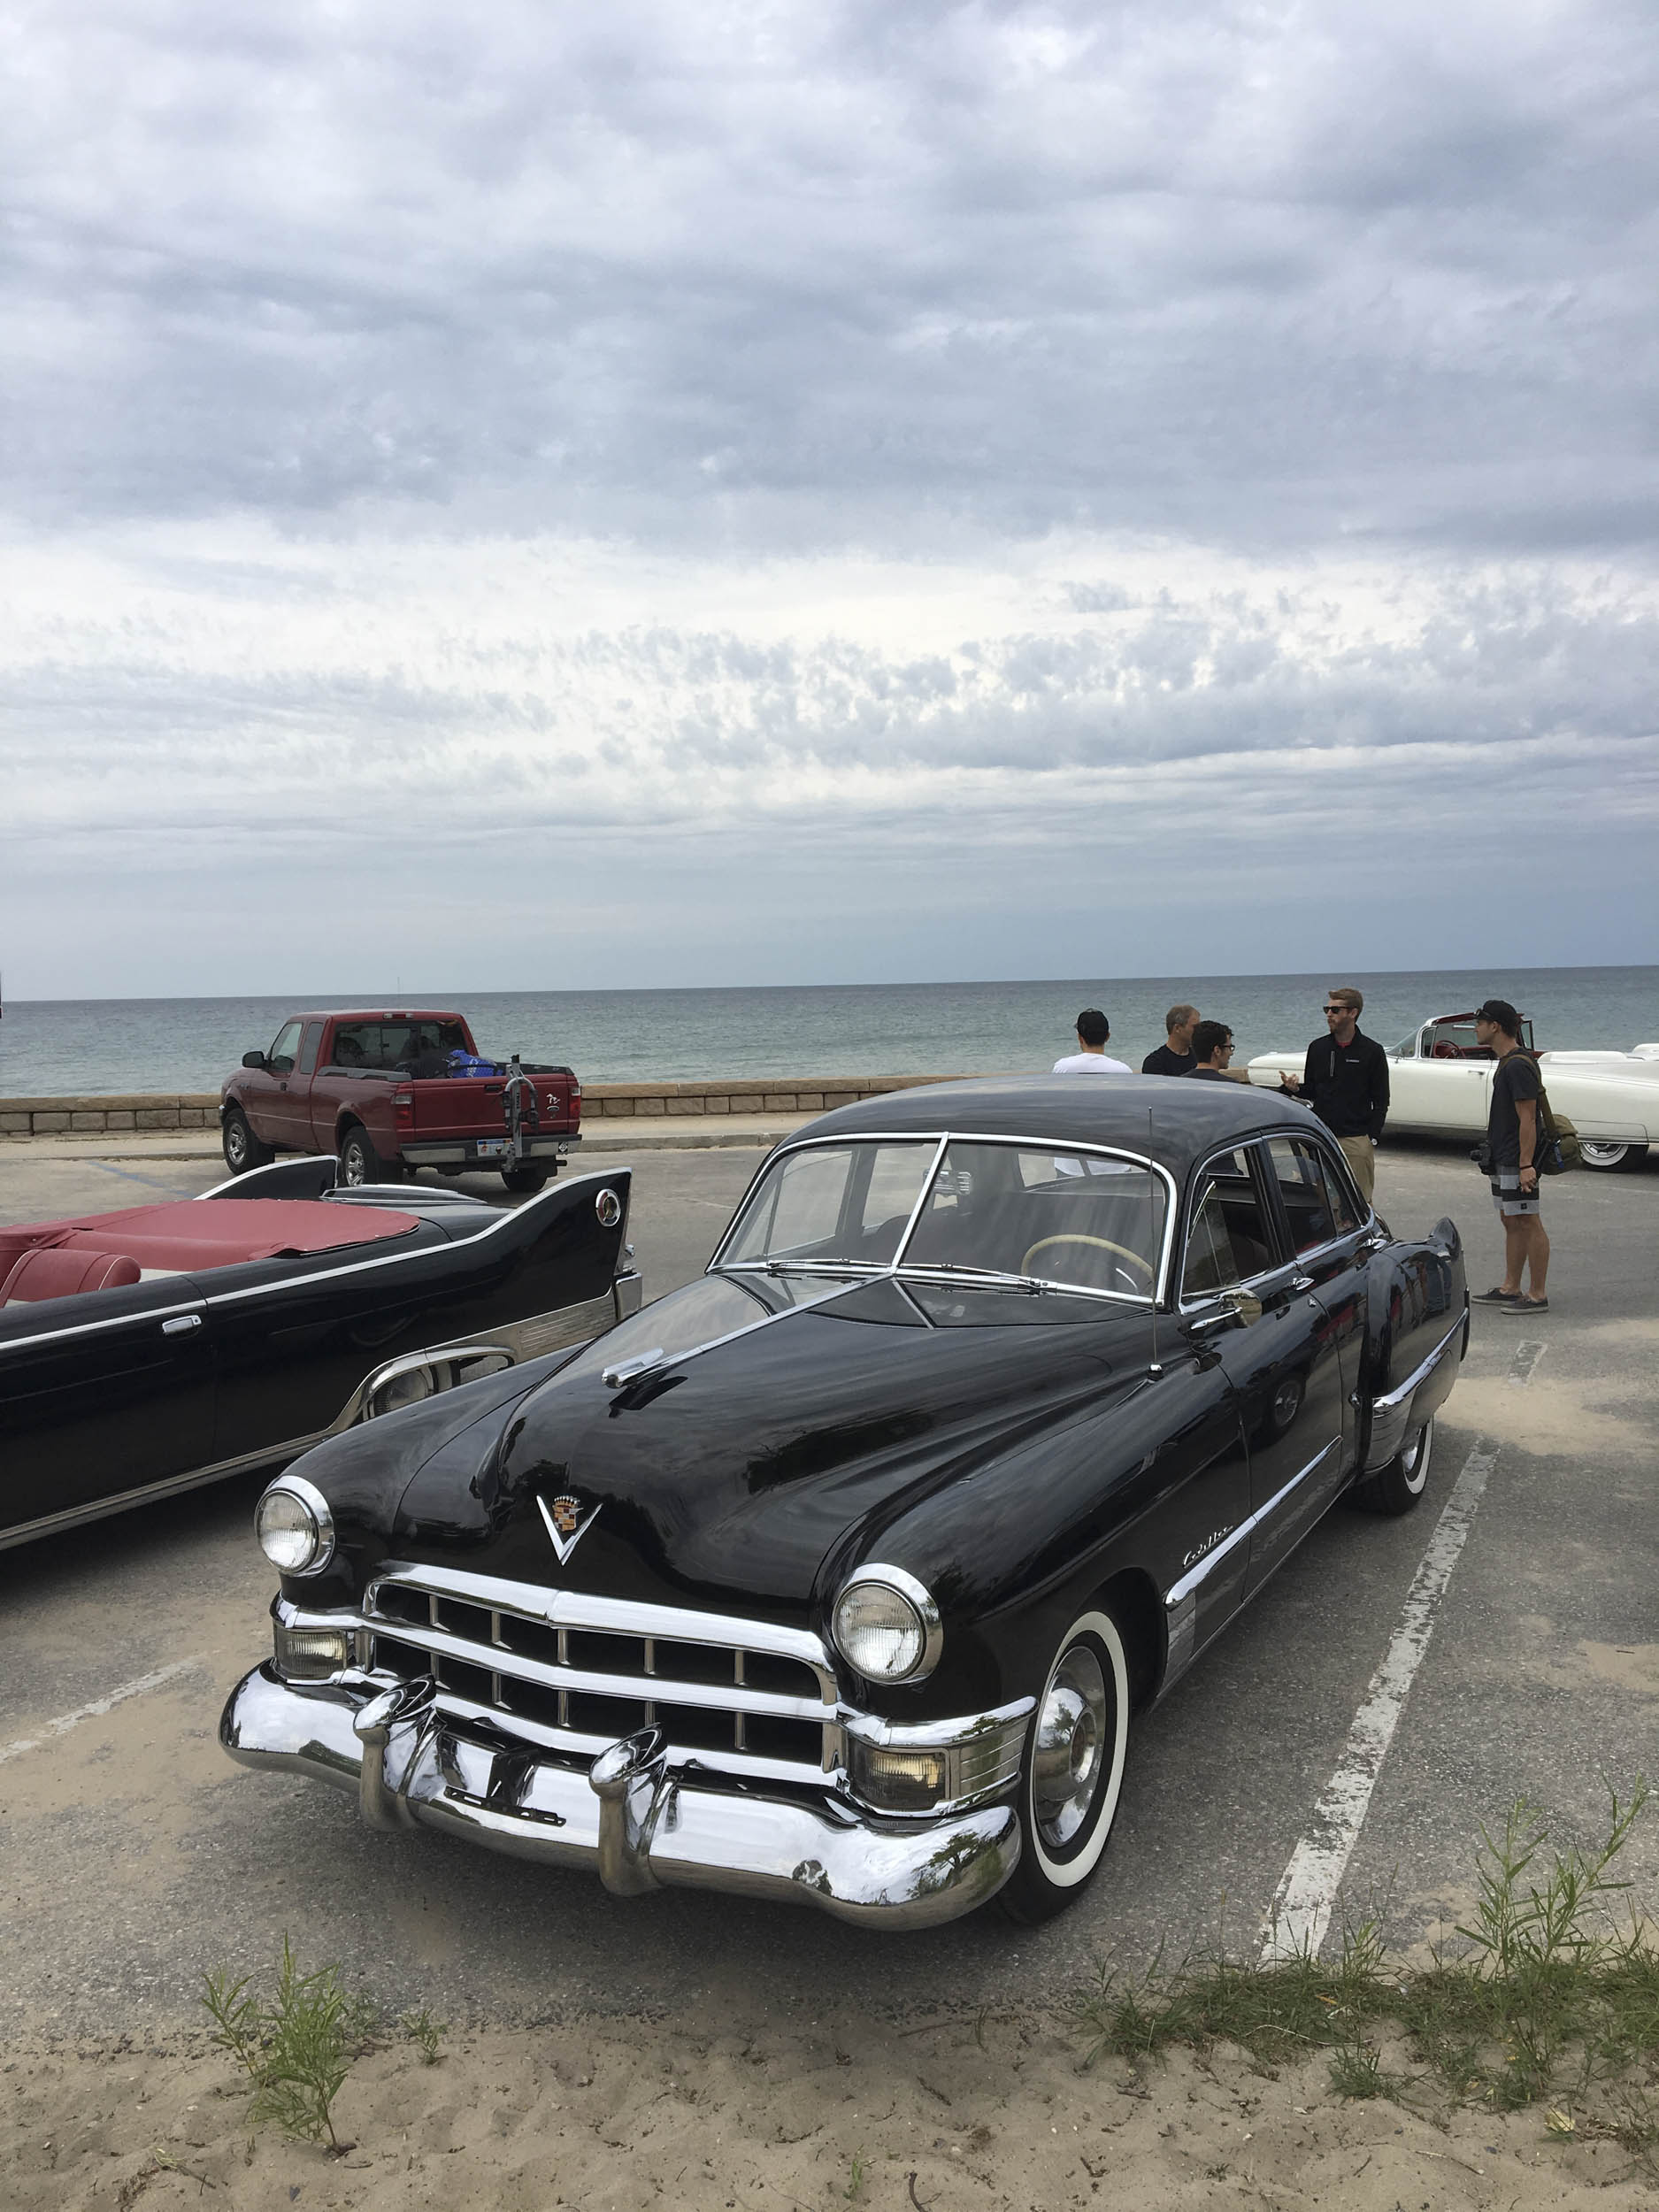 1949 Cadillac by the bay